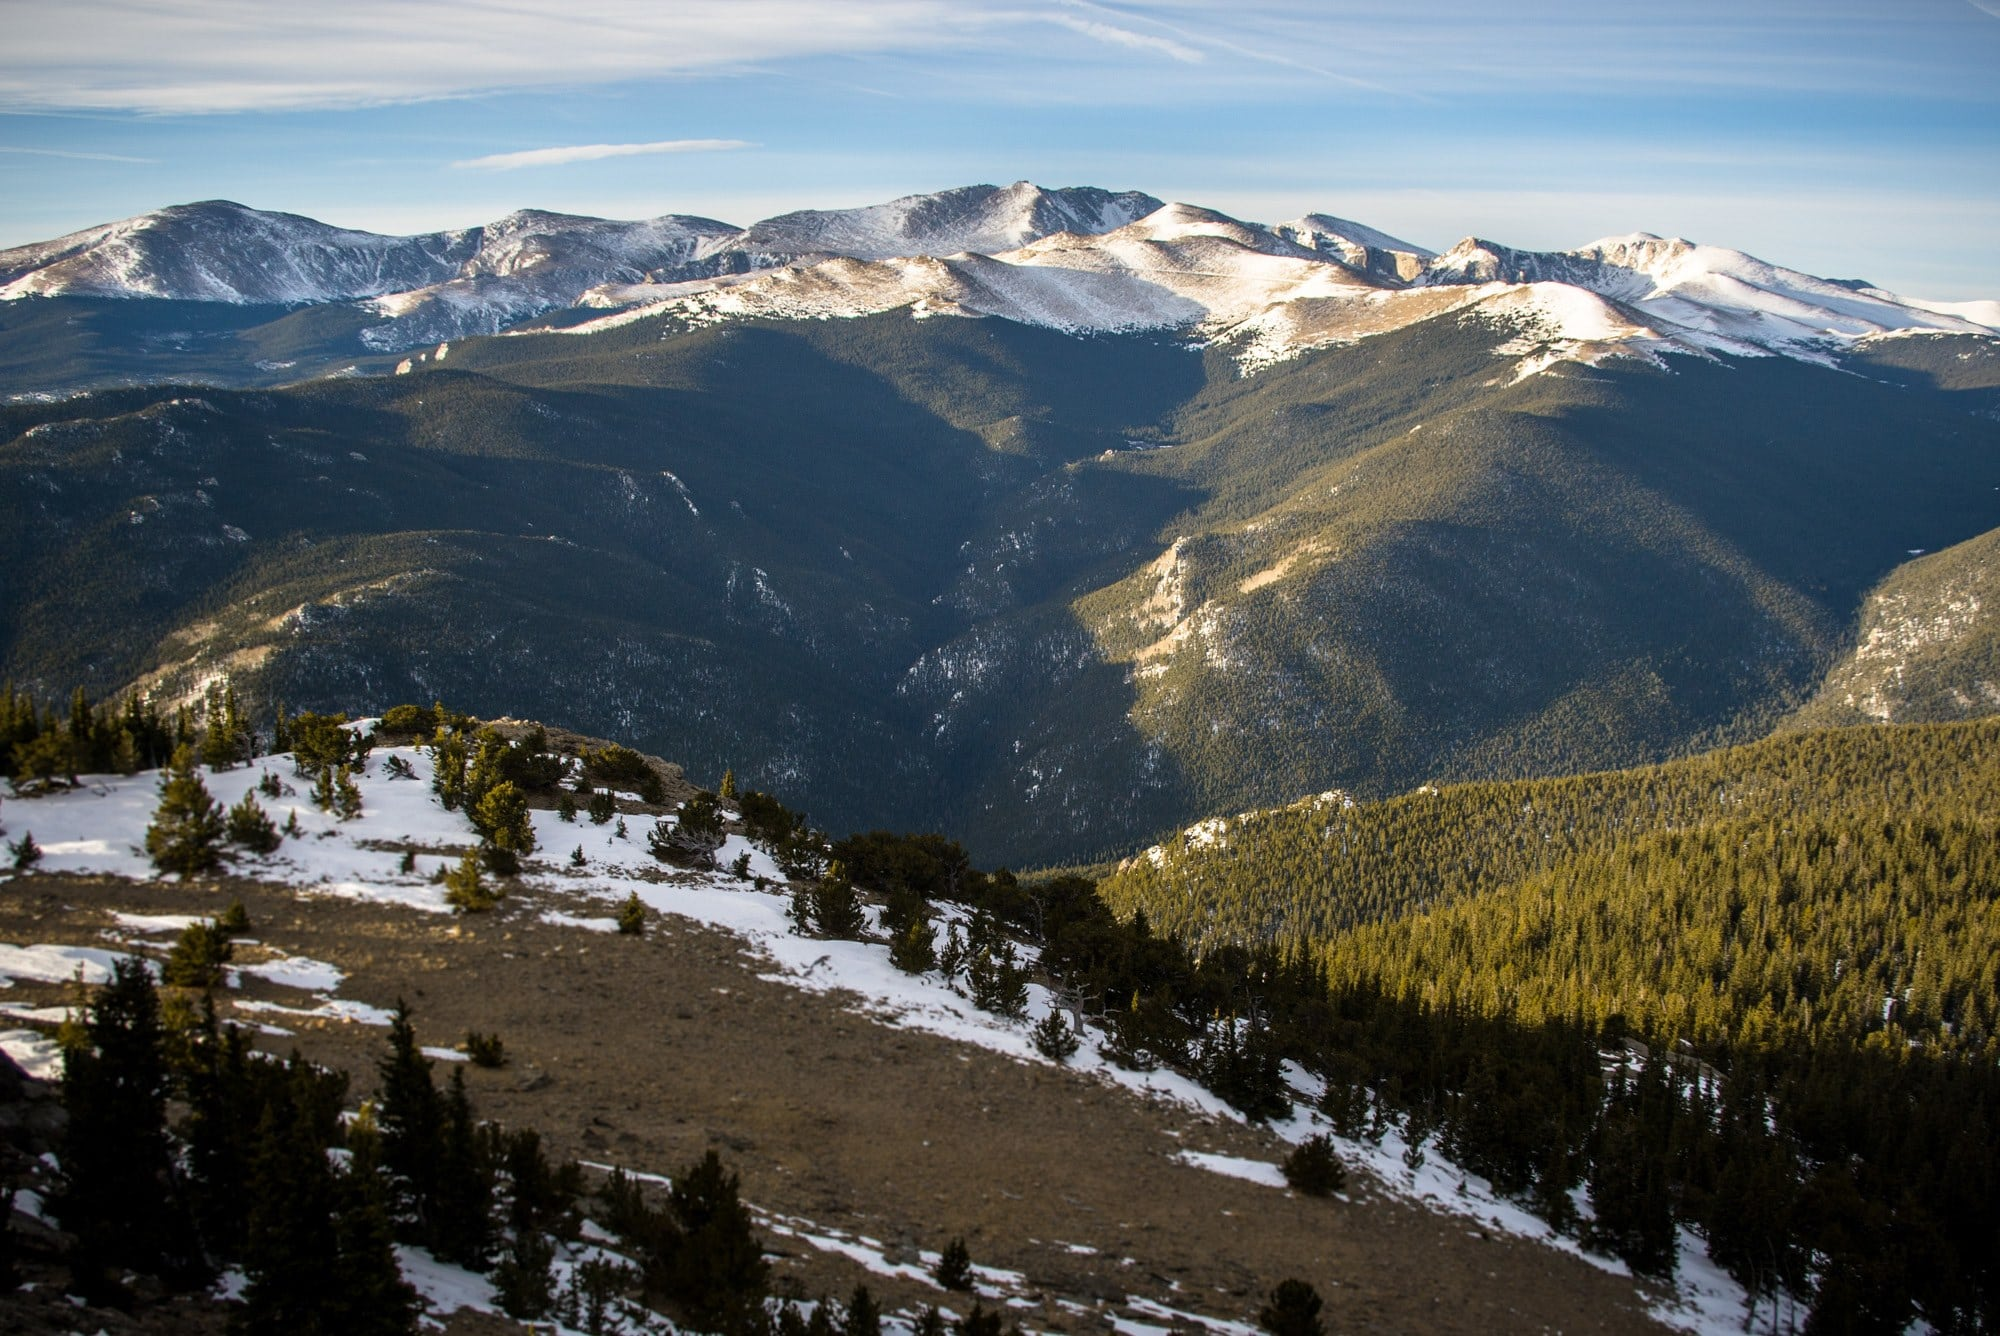 Chief Highway // Don't wait until the high elevation snow melts to start hiking in Colorado this summer. here are 5 Colorado spring hikes in the Front Range that are perfect for mud season.